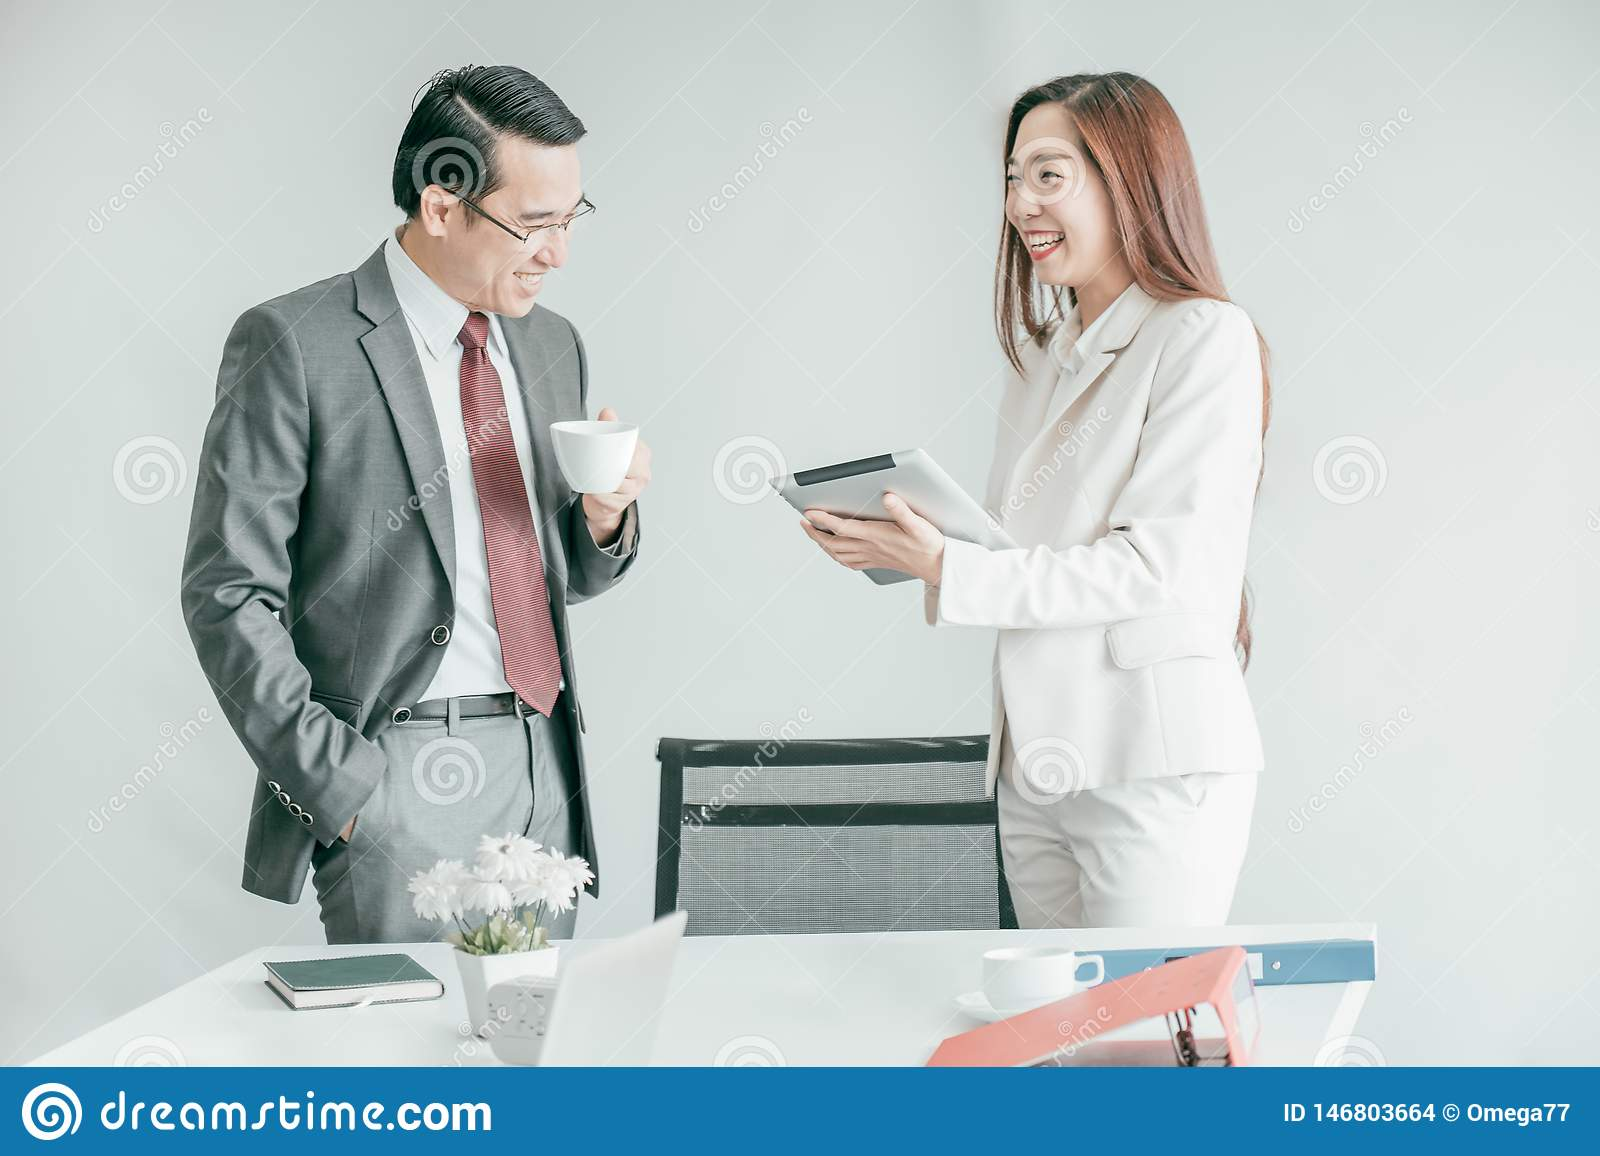 Business people having fun and talking at workplace office